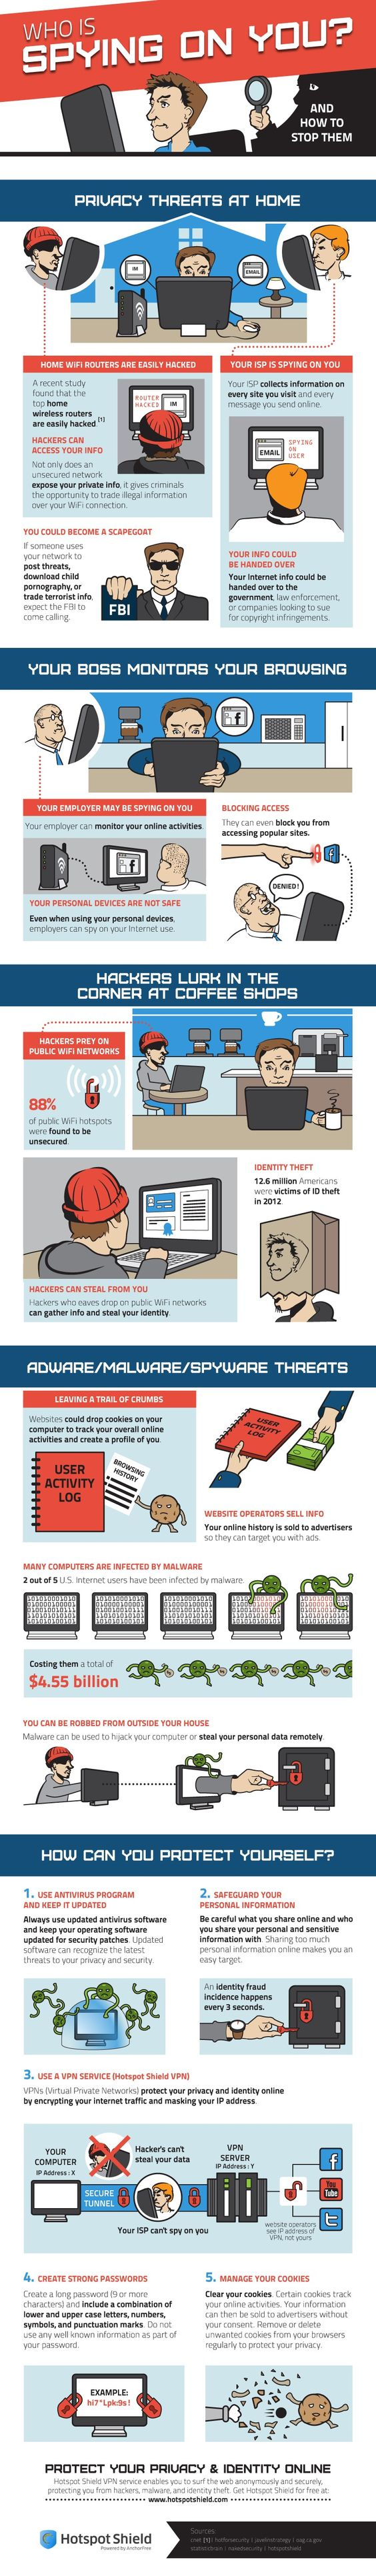 Top 10 Ways To Protect Yourself On Public Wi-Fi